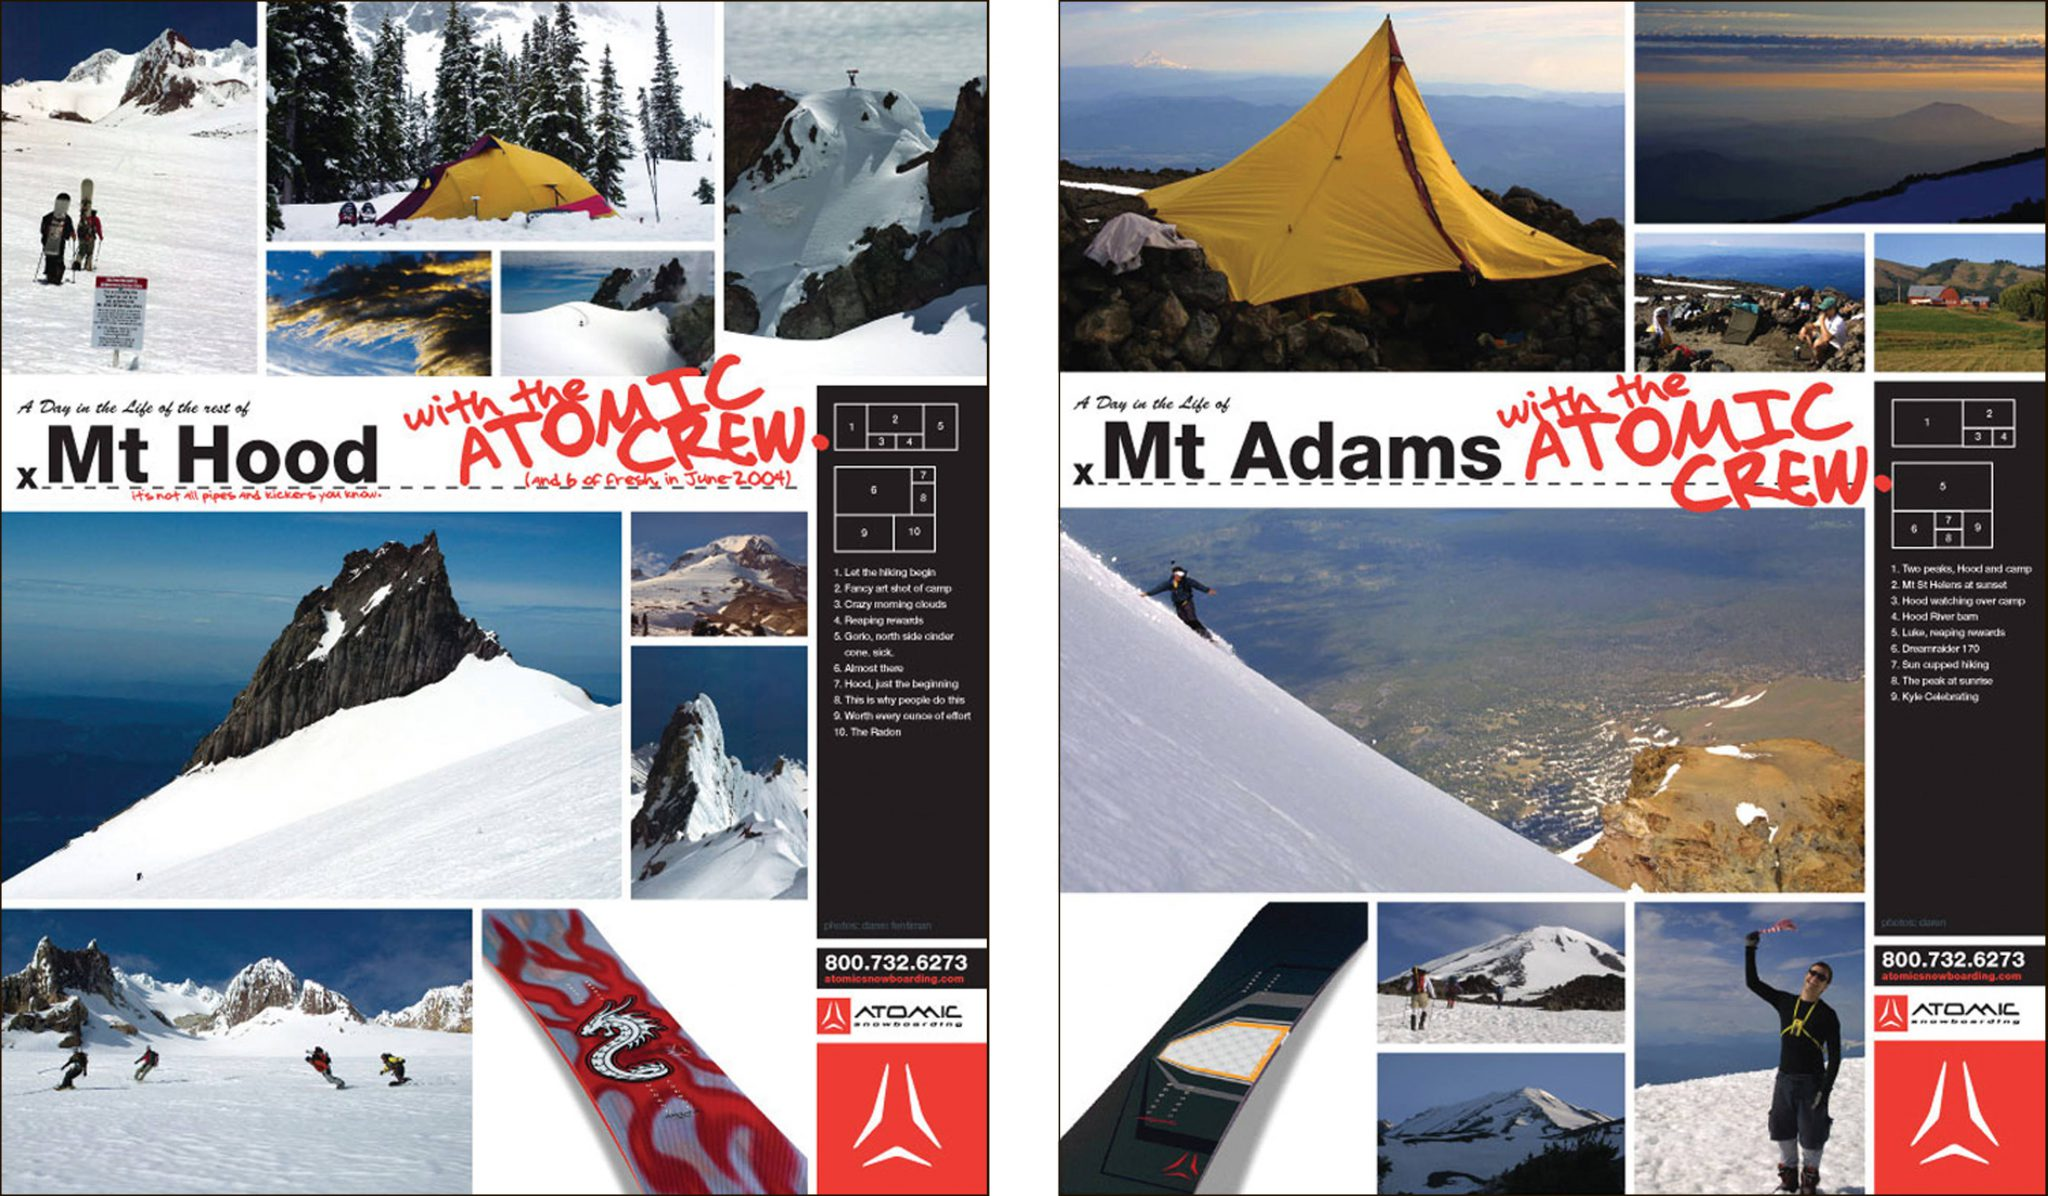 Atomic Freeride Ad Campaign